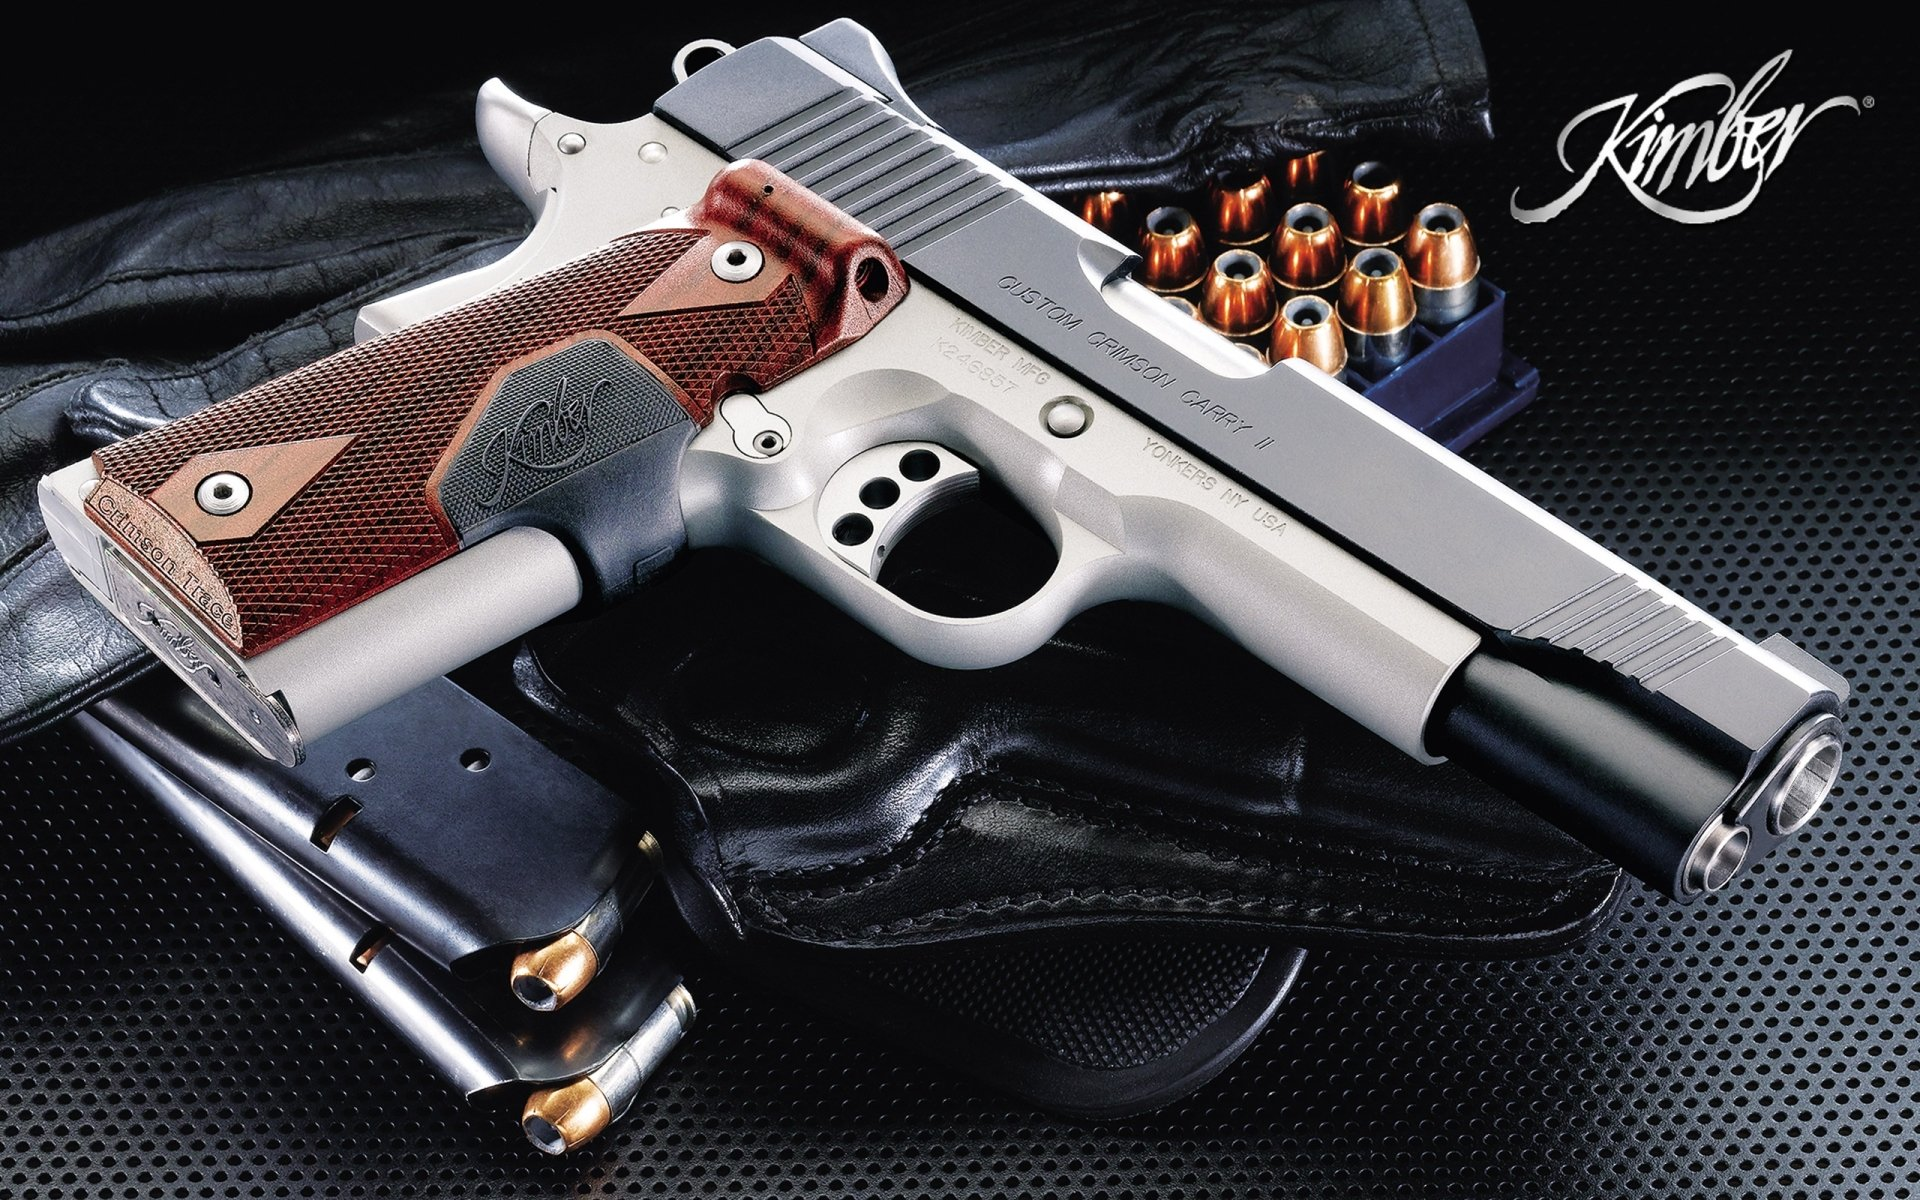 15 Kimber Pistol HD Wallpapers Background Images 1920x1200